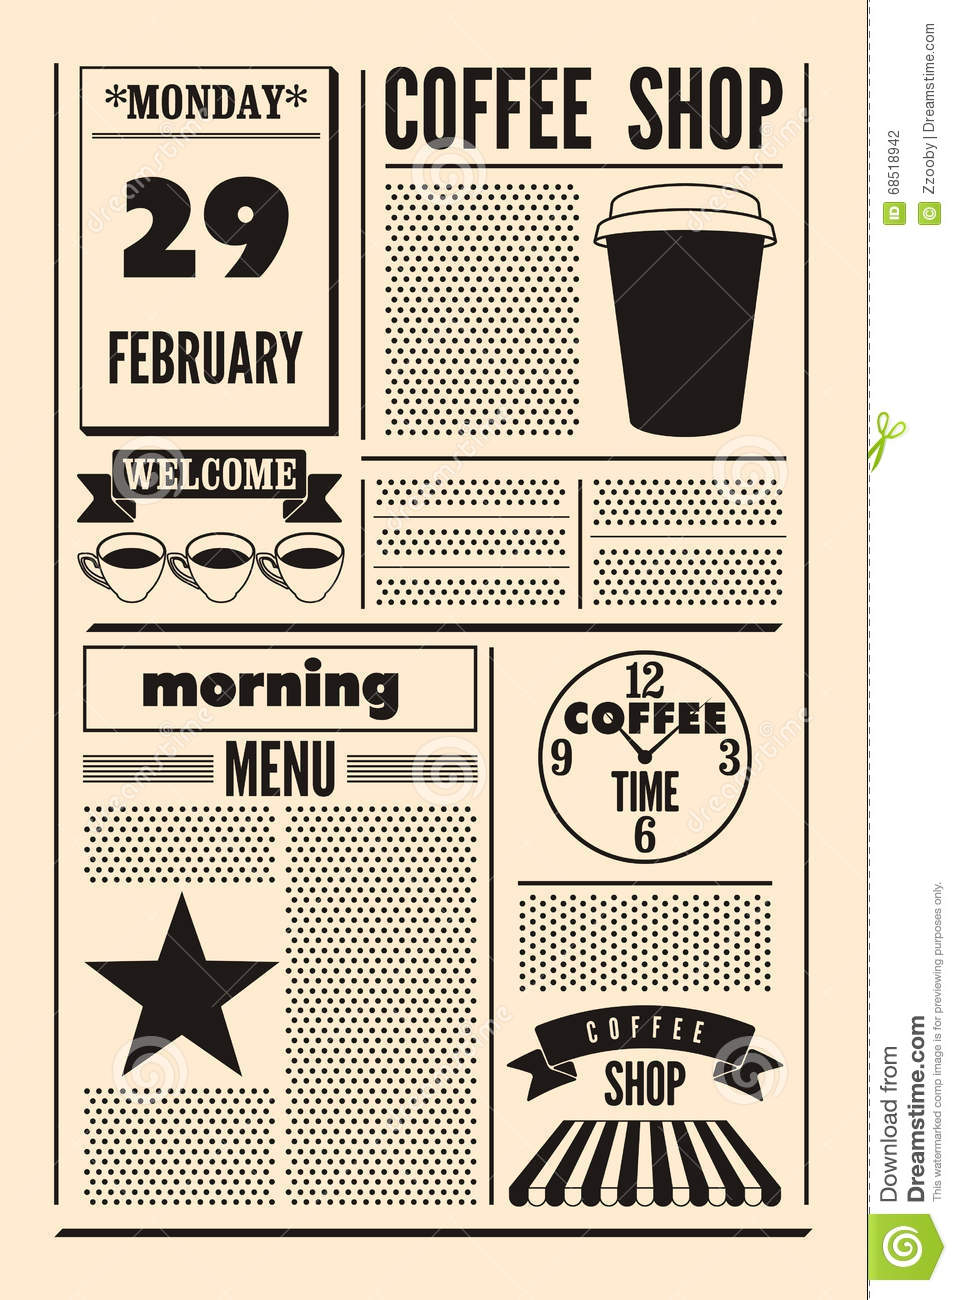 coffee shop typographical vintage newspaper style poster